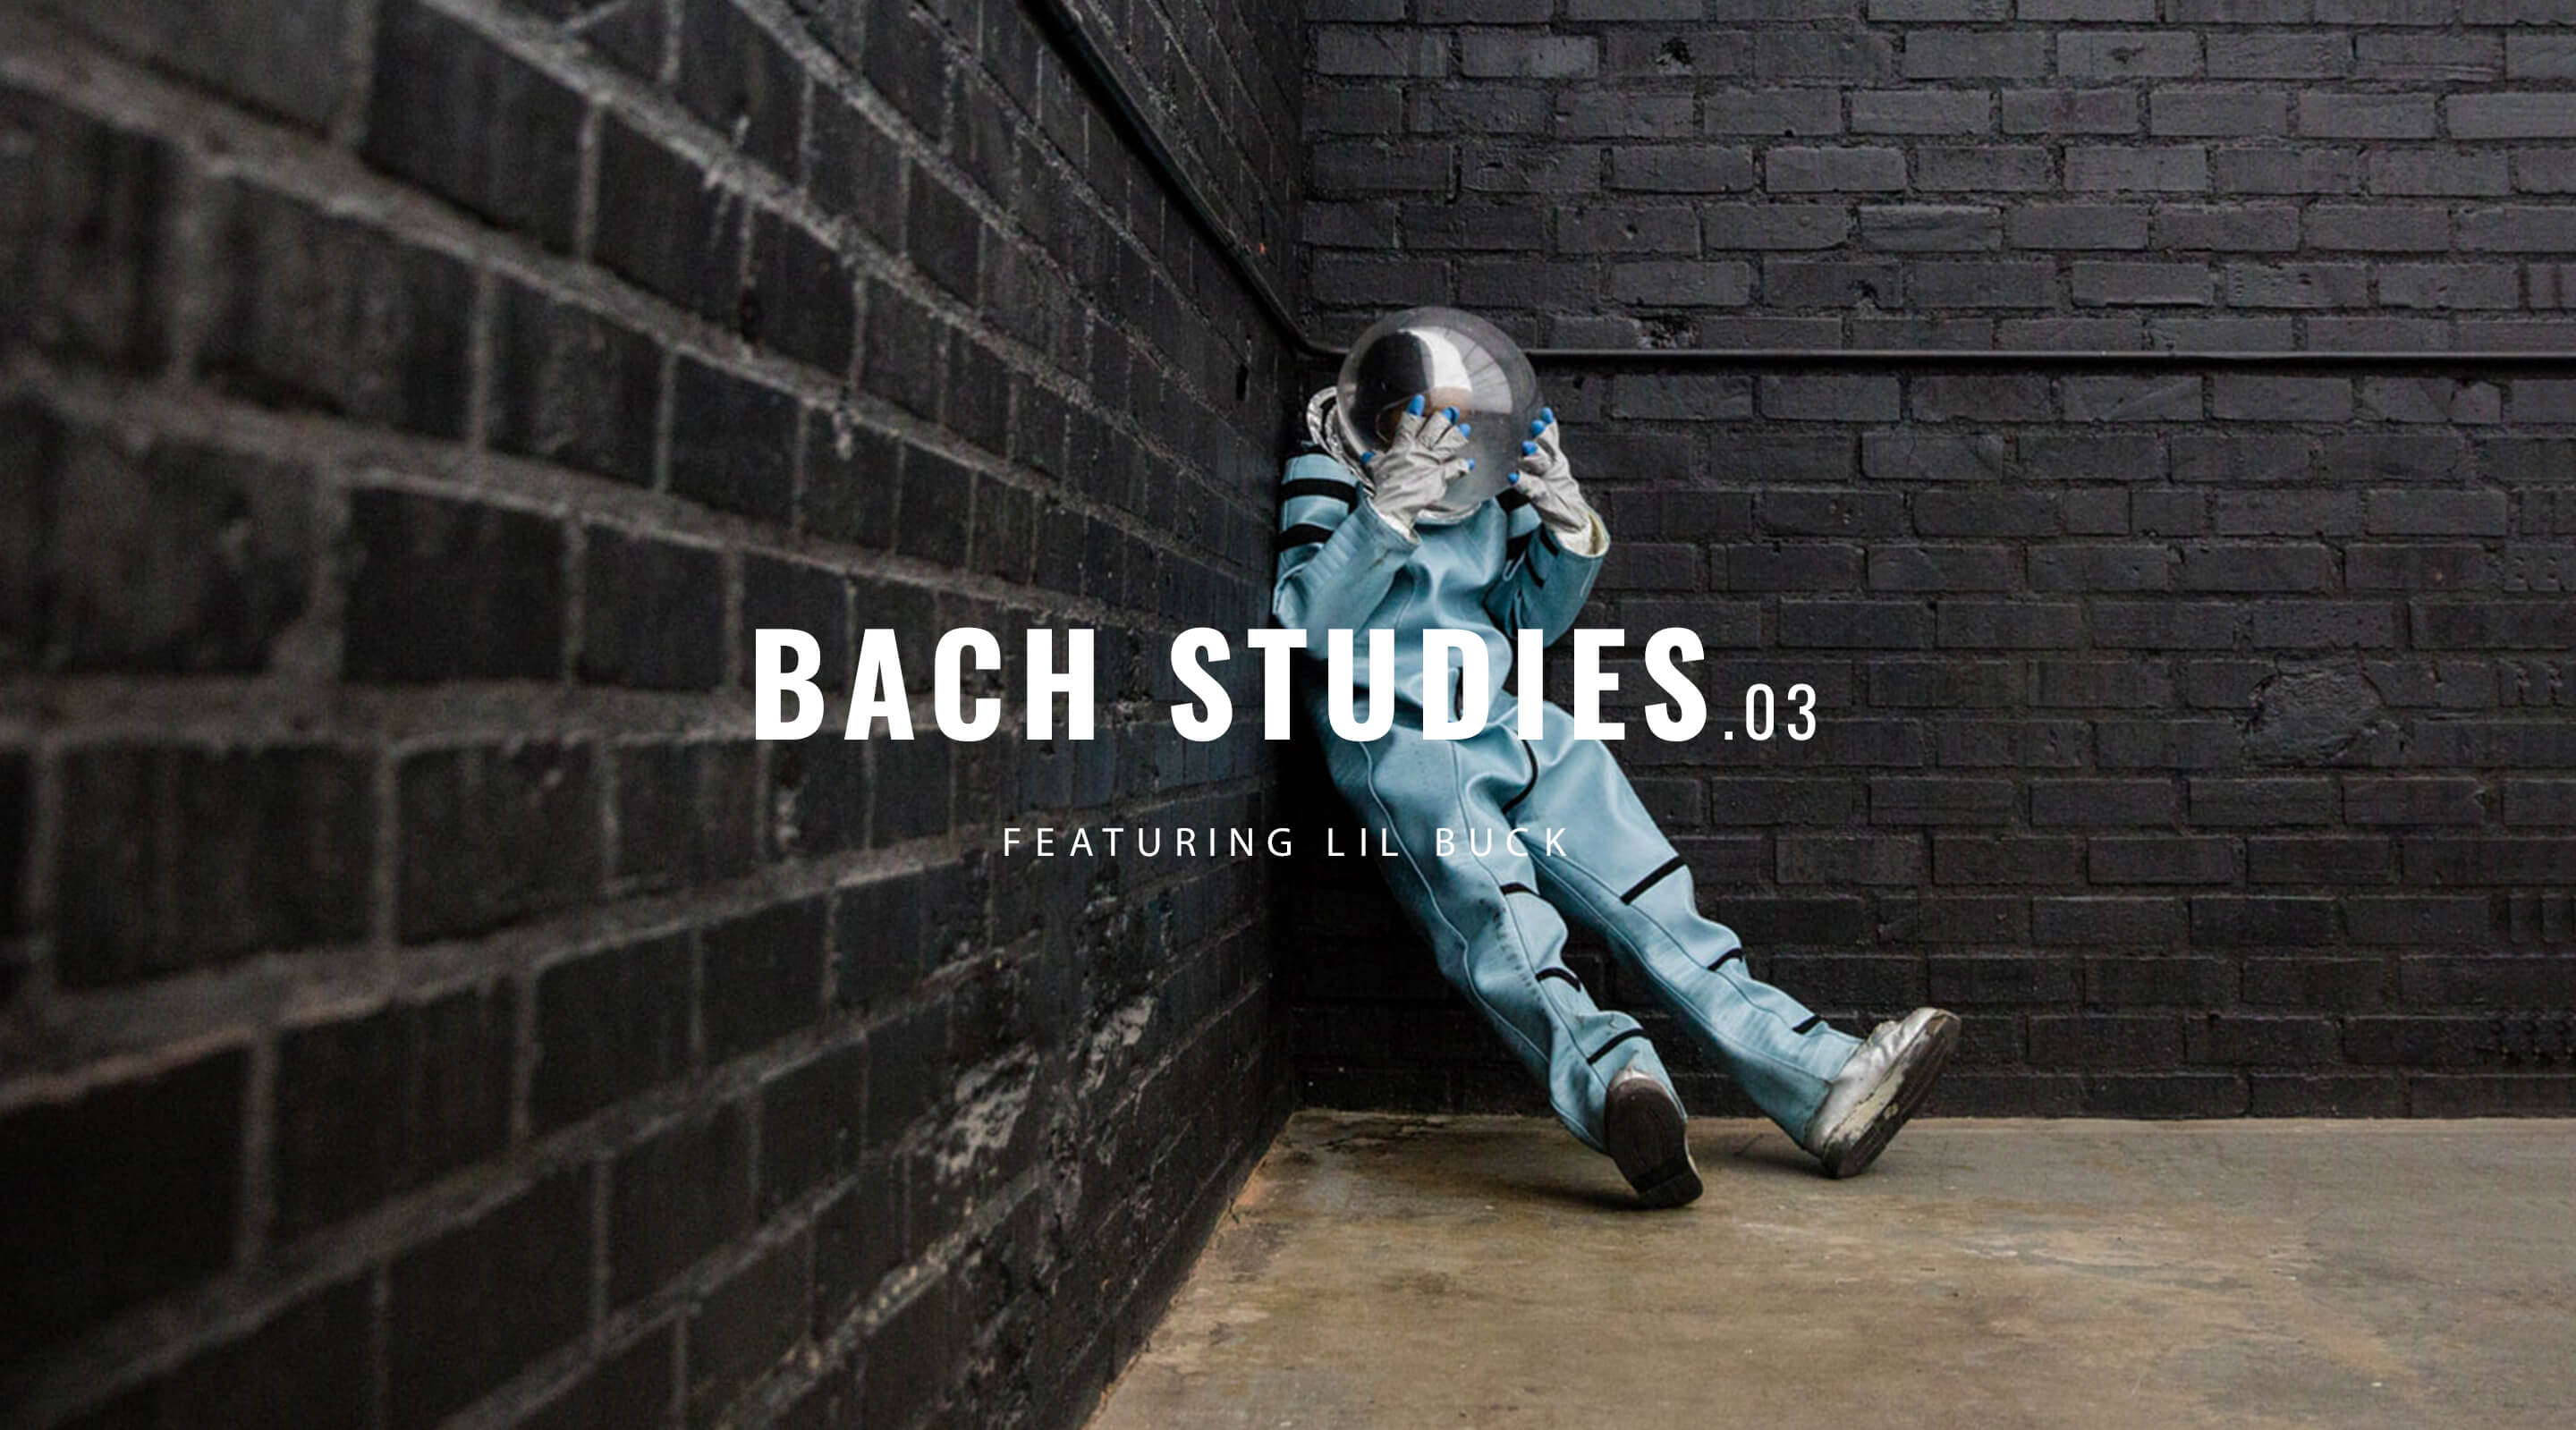 Bach studies.03 Featuring Lil Buck